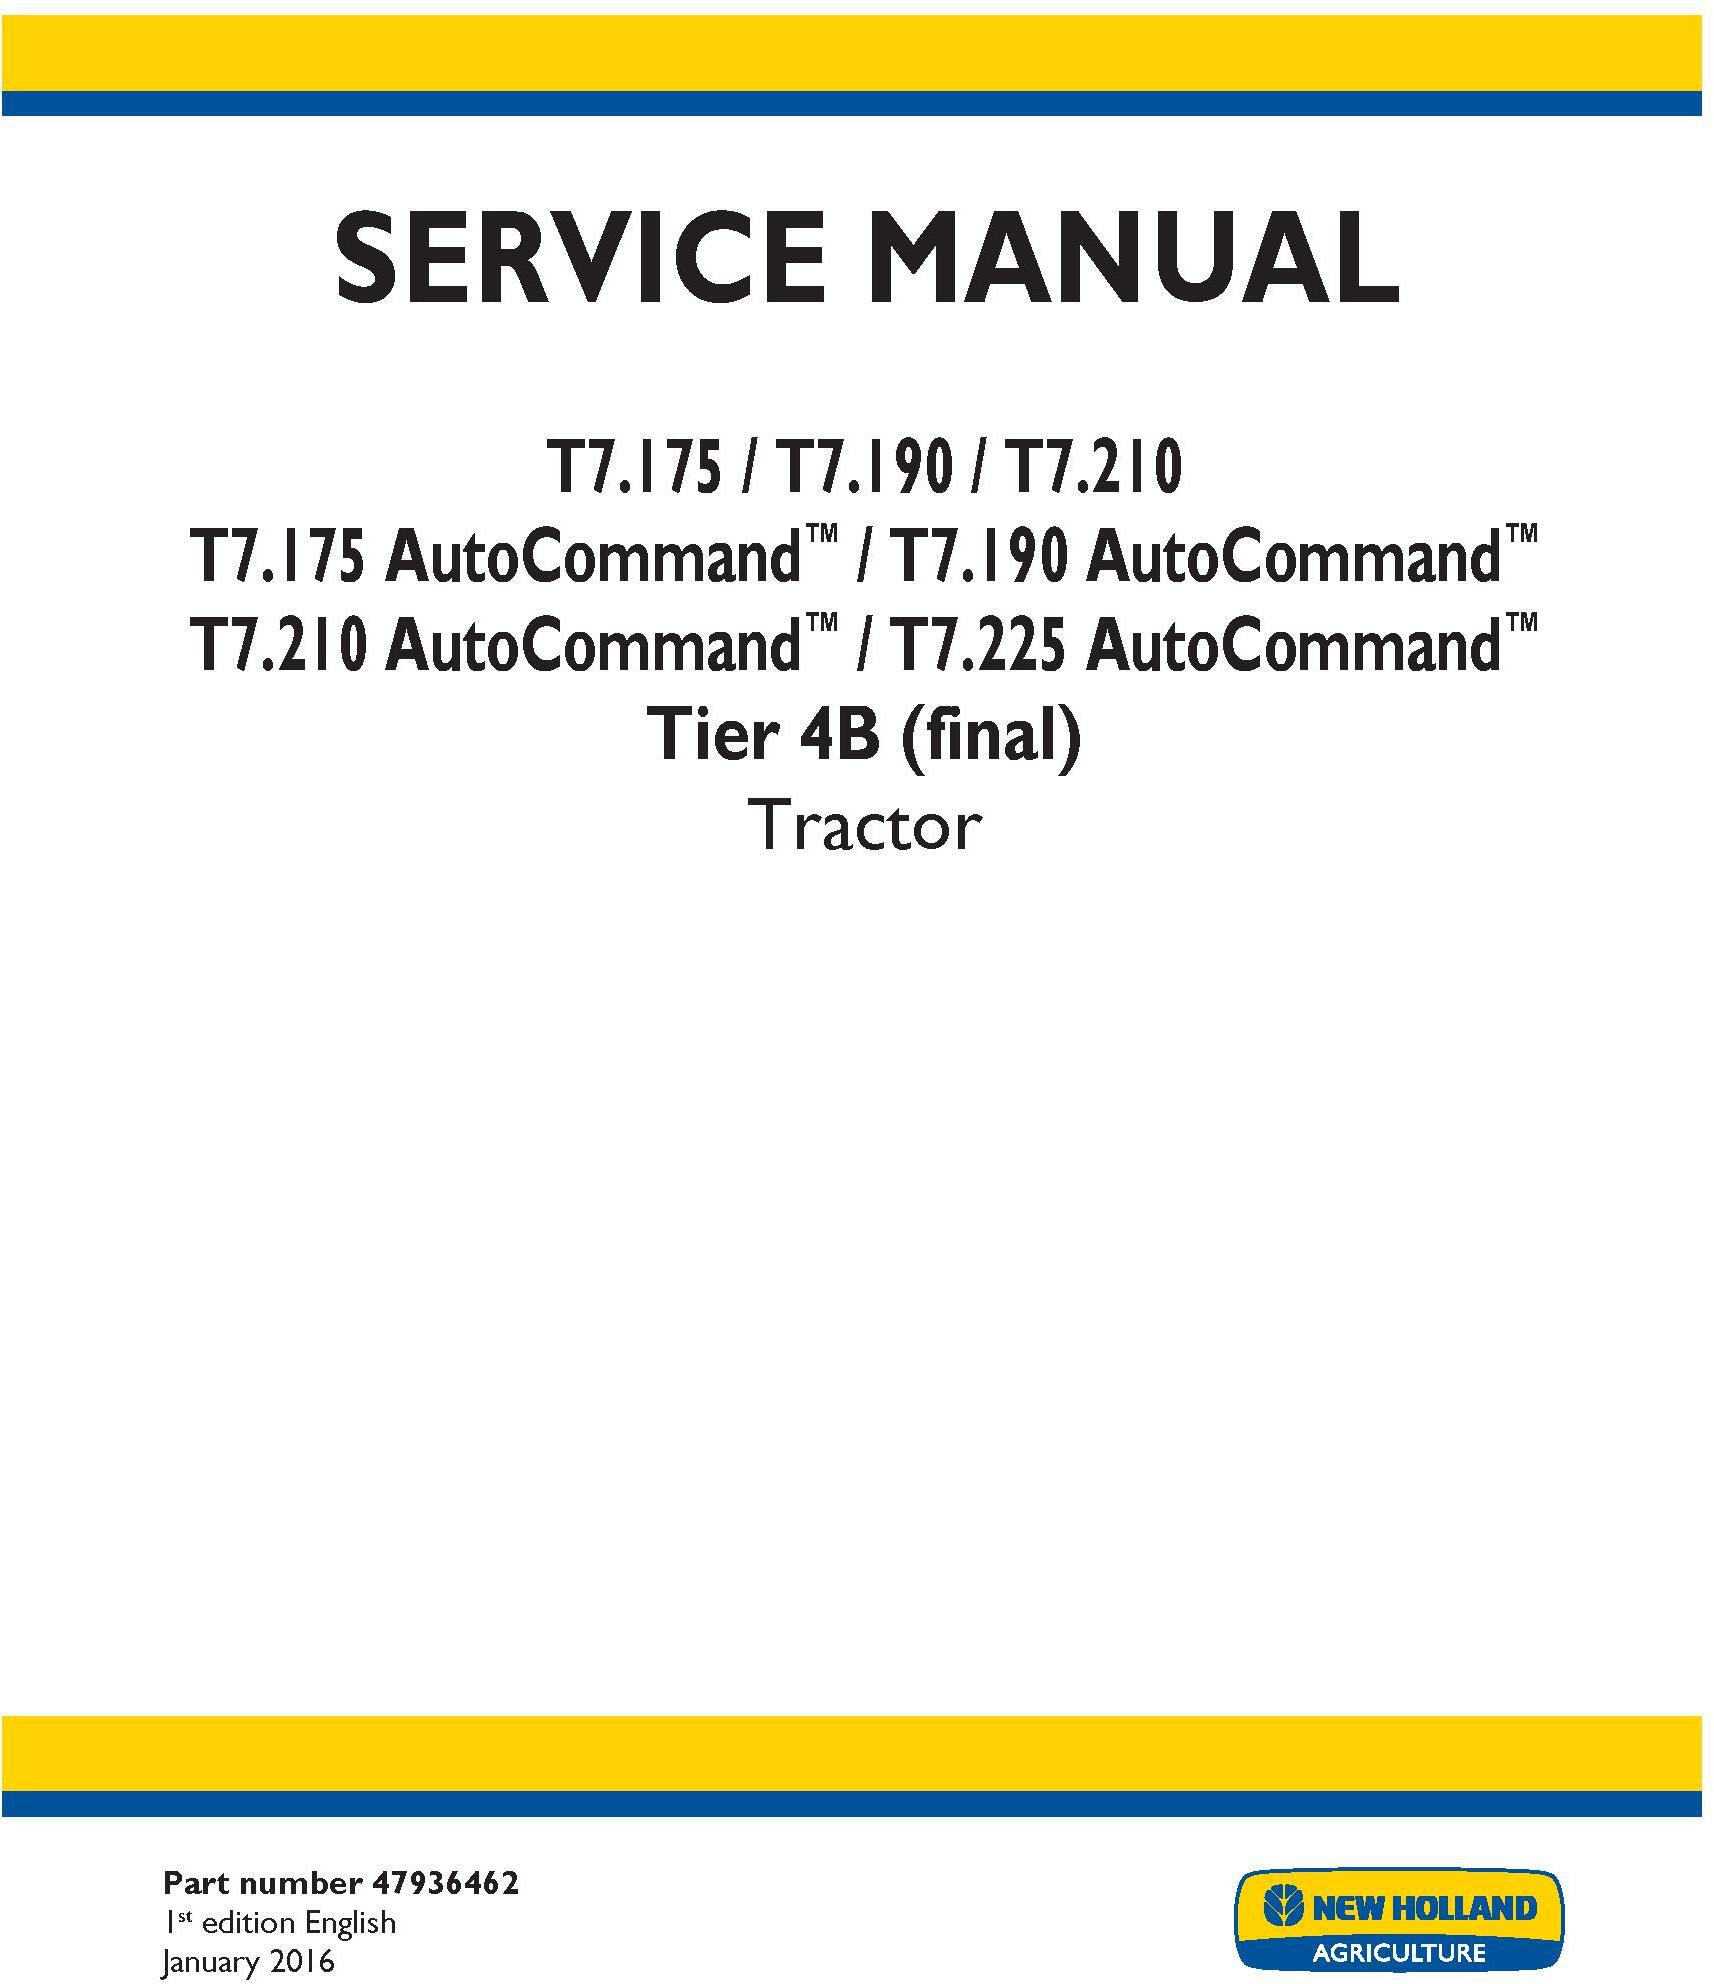 New Holland T7.175, T7.190, T7.210, T7.225 AutoCommand Tier 4B (final) Tractor Service Manual (USA) - 19467